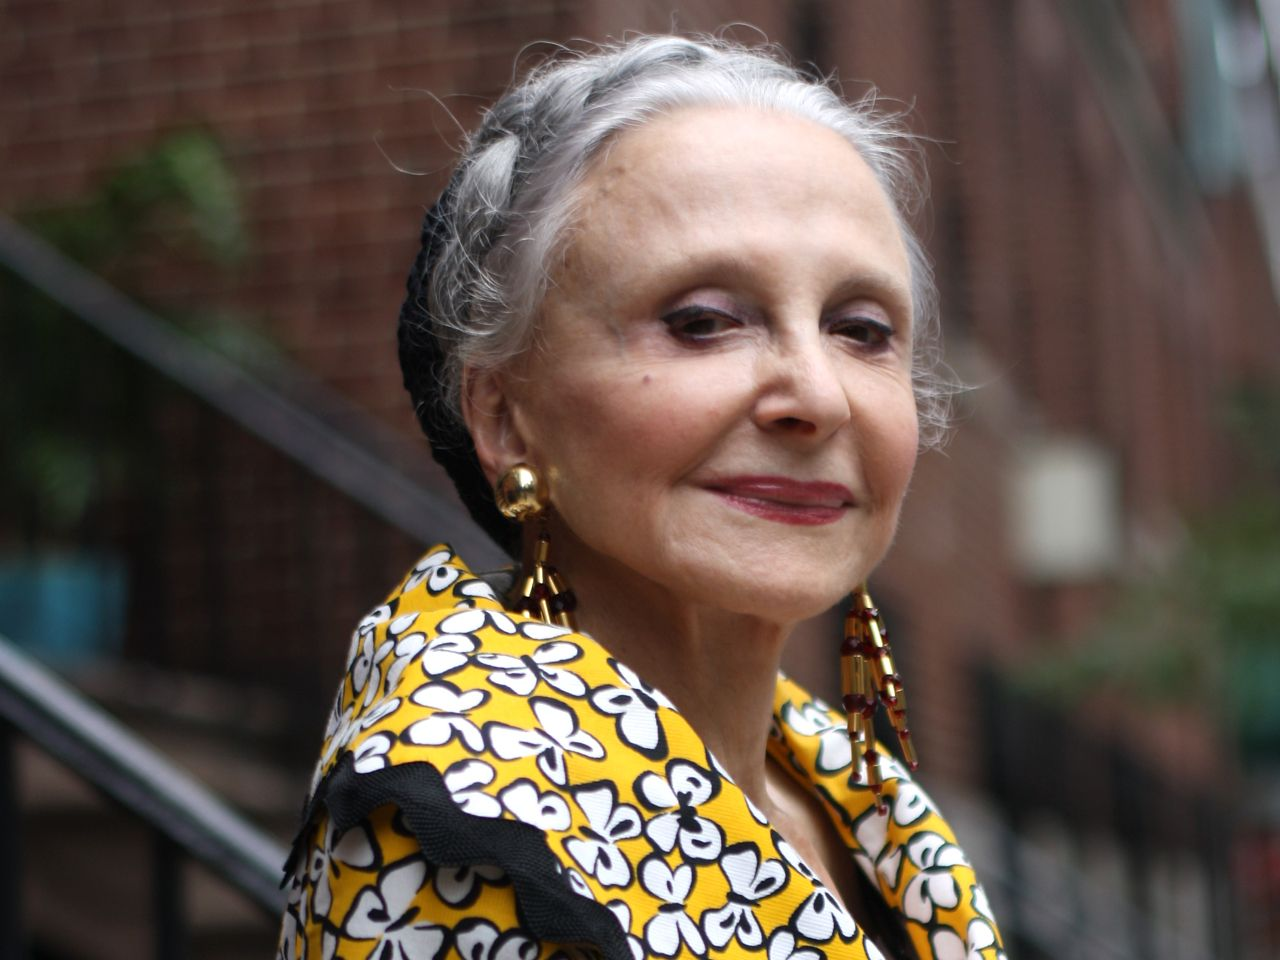 Beauty secrets from an 80yearold 'goddess' of style